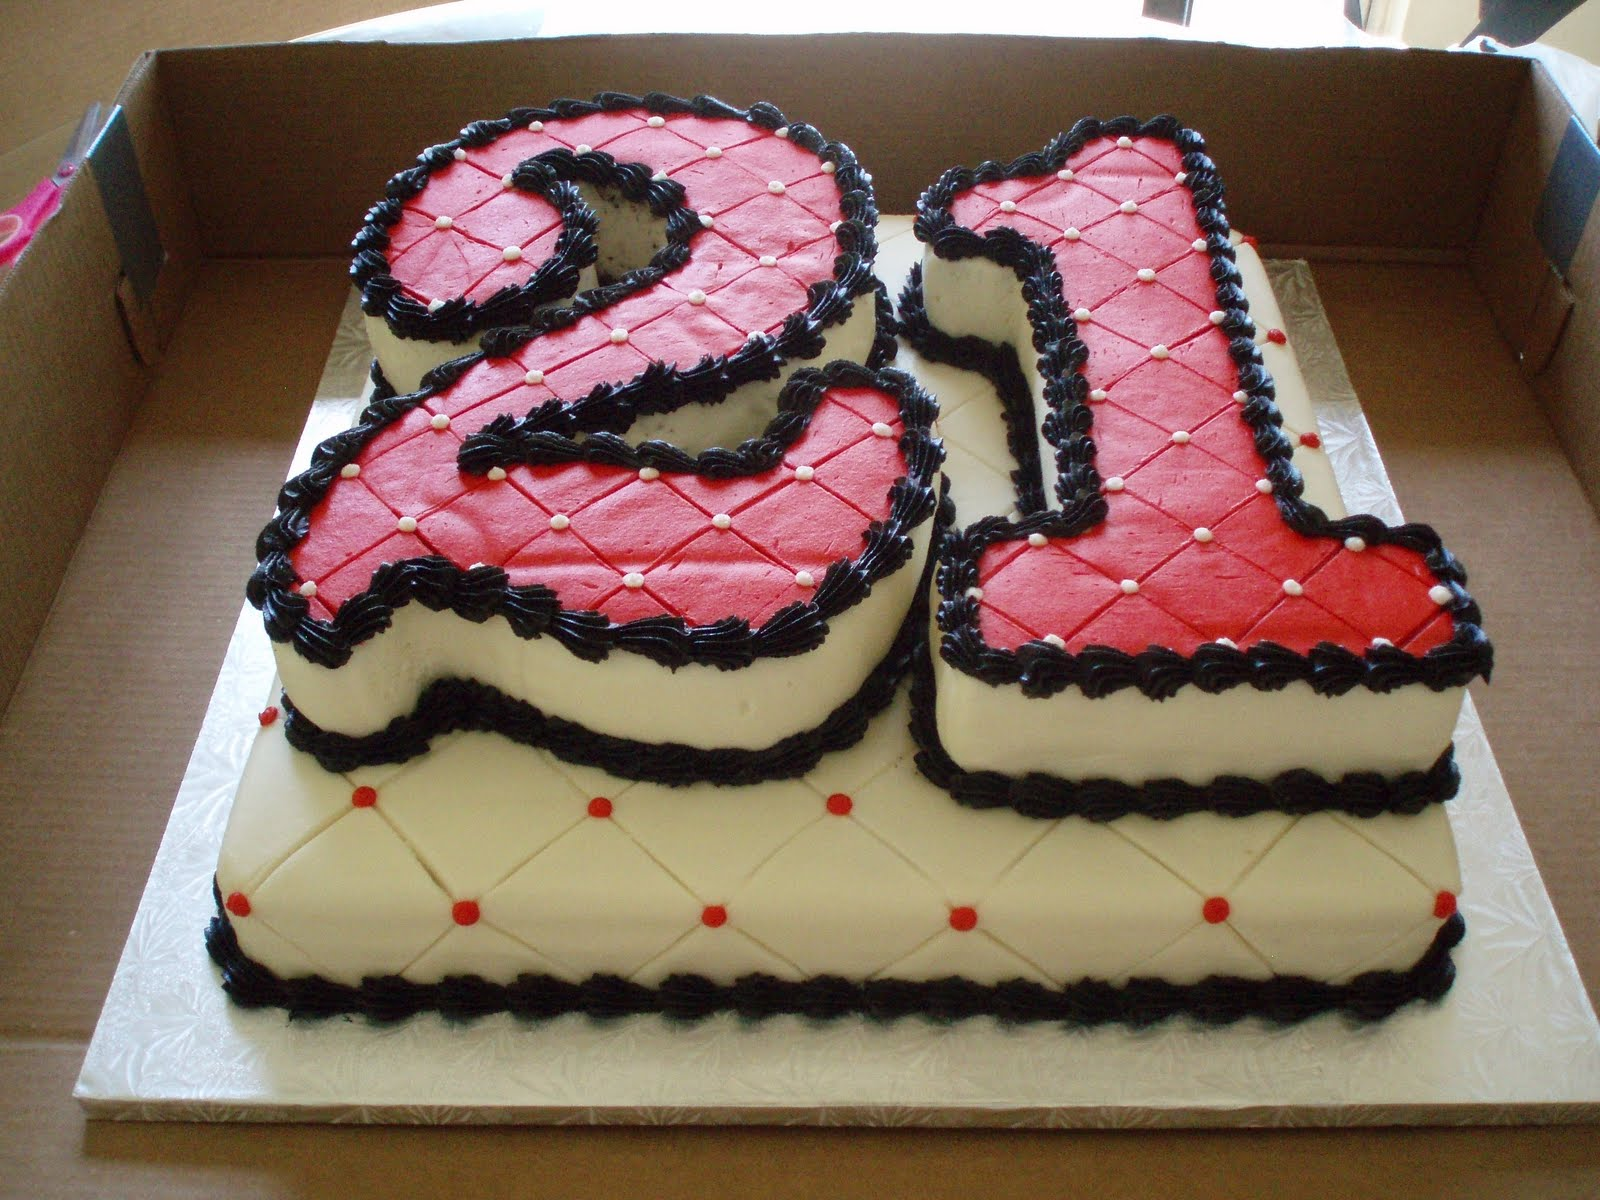 Cake Decorating Ideas For 21st Birthday : SAMANTHA S SWEET TREATS: 21st Birthday